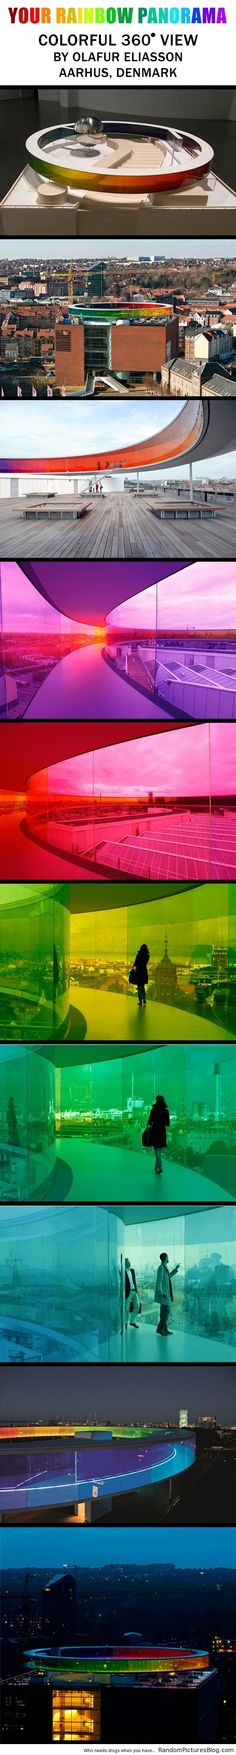 Your rainbow panorama – Olafur Eliasson #modern #buildings #amazing #colorful #architecture